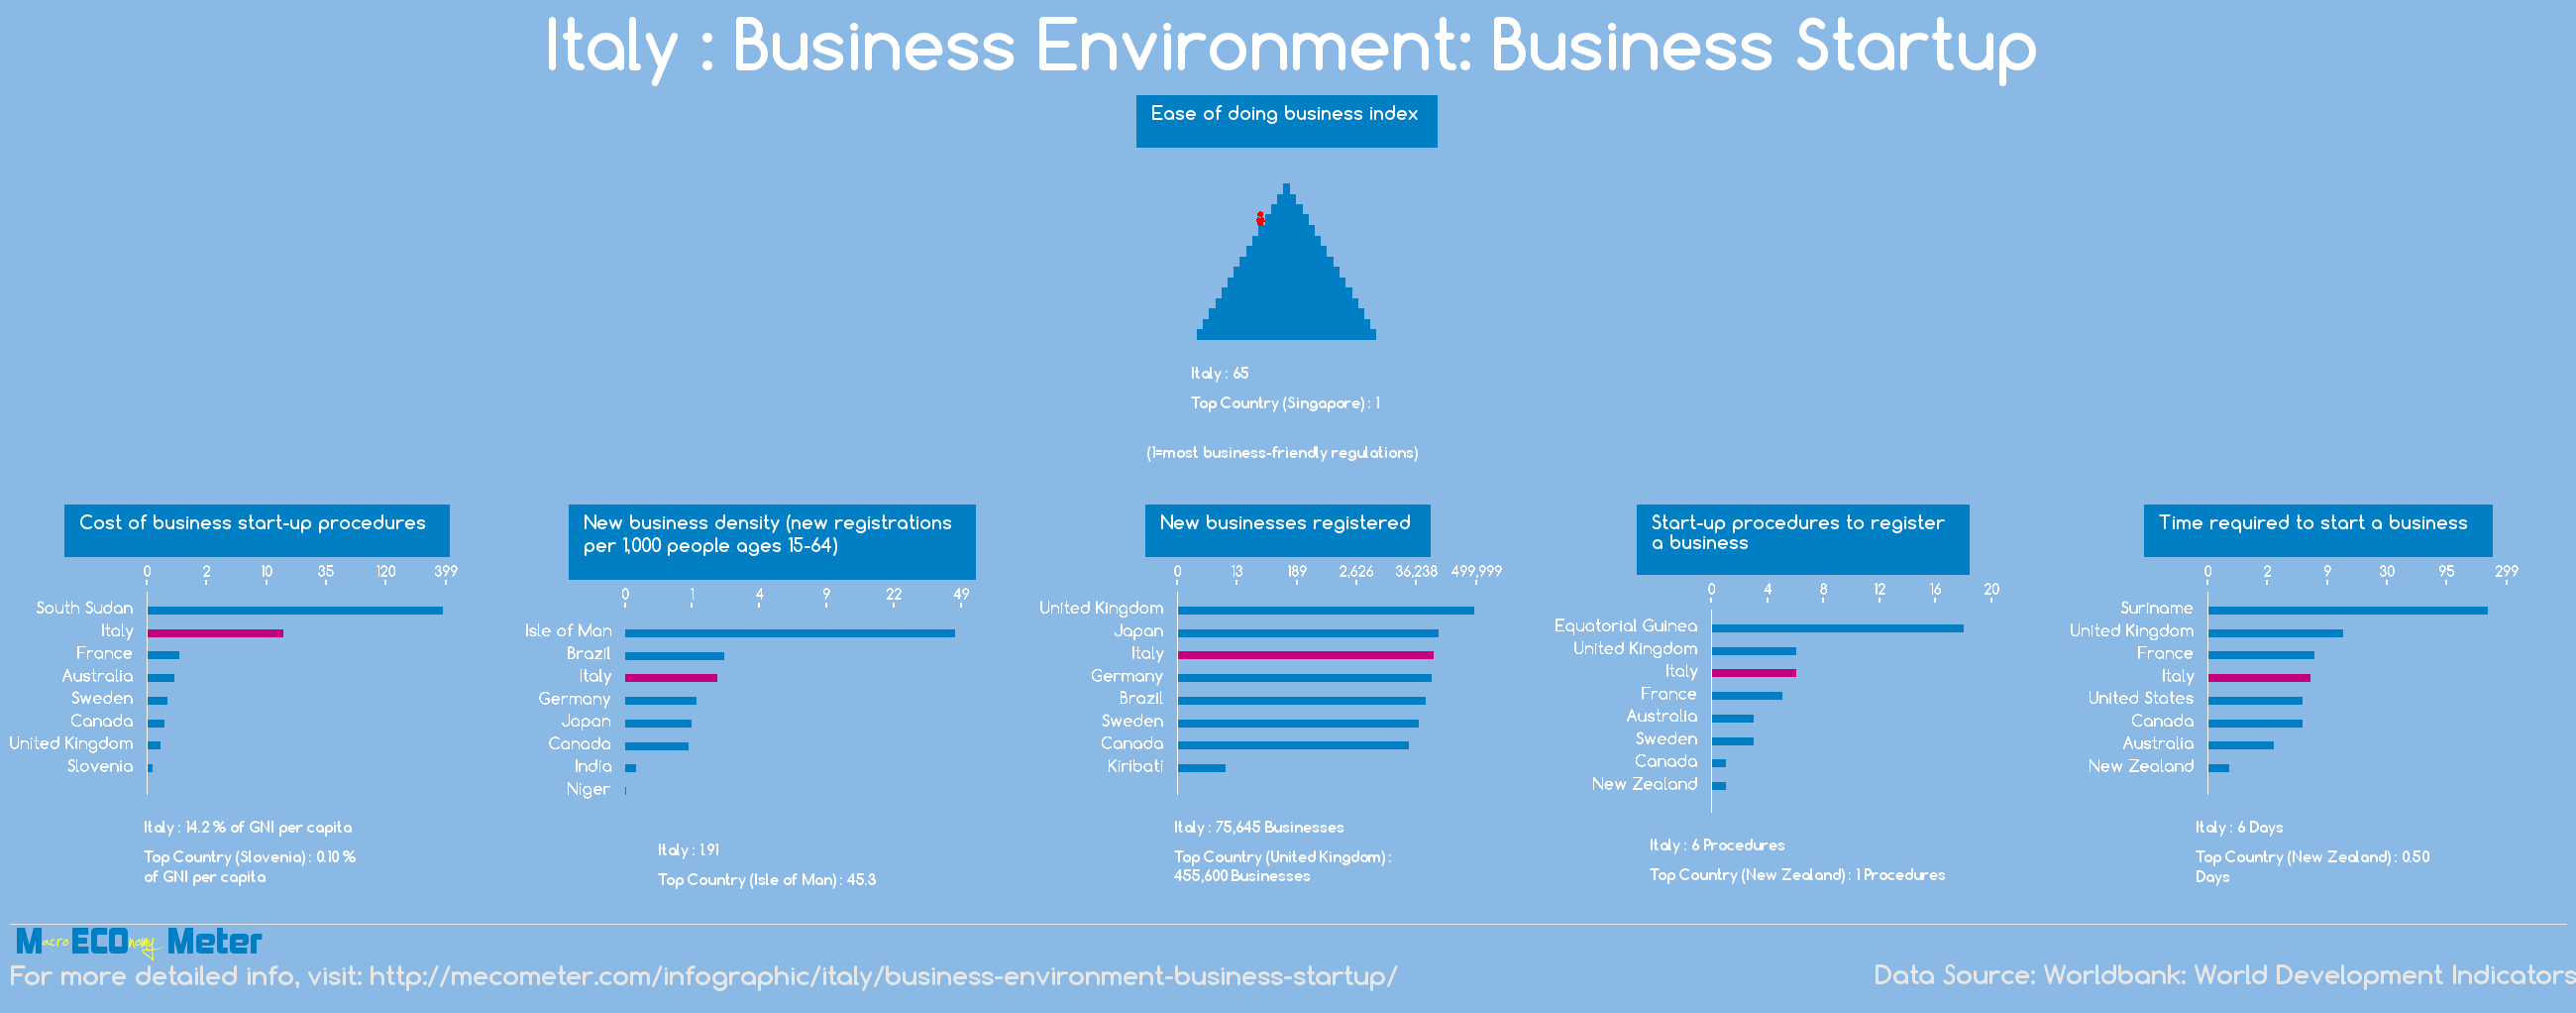 Italy : Business Environment: Business Startup